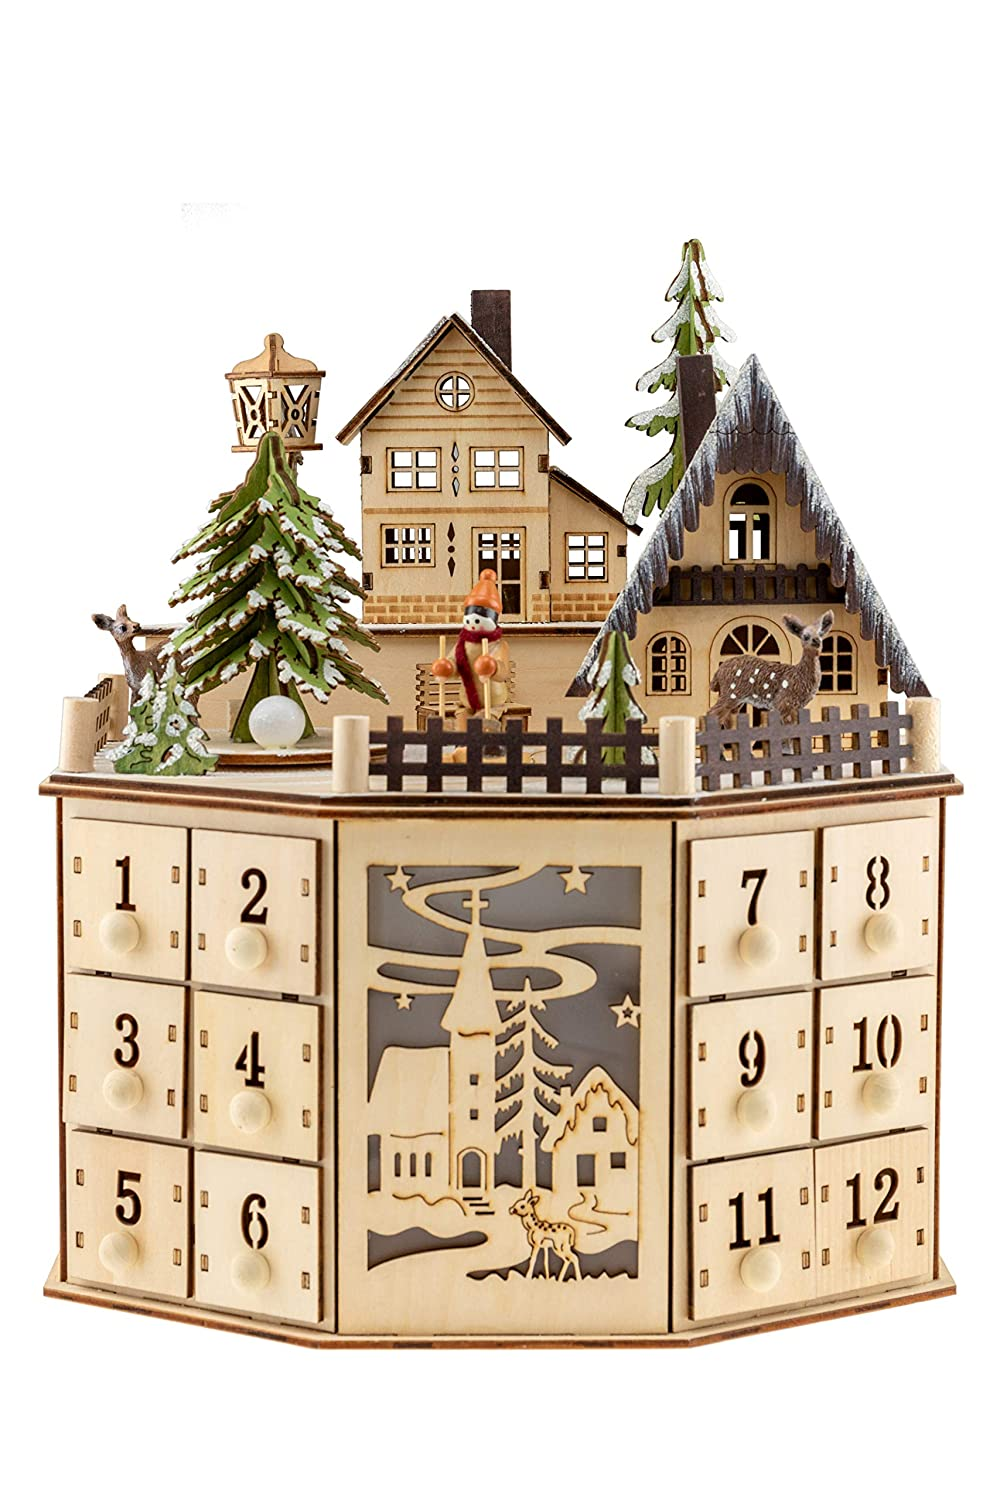 Clever Creations Traditional Wooden Advent Calendar | Festive Christmas Village Design with 24 Drawers | LED Christmas Lights and Rotating Christmas Tree